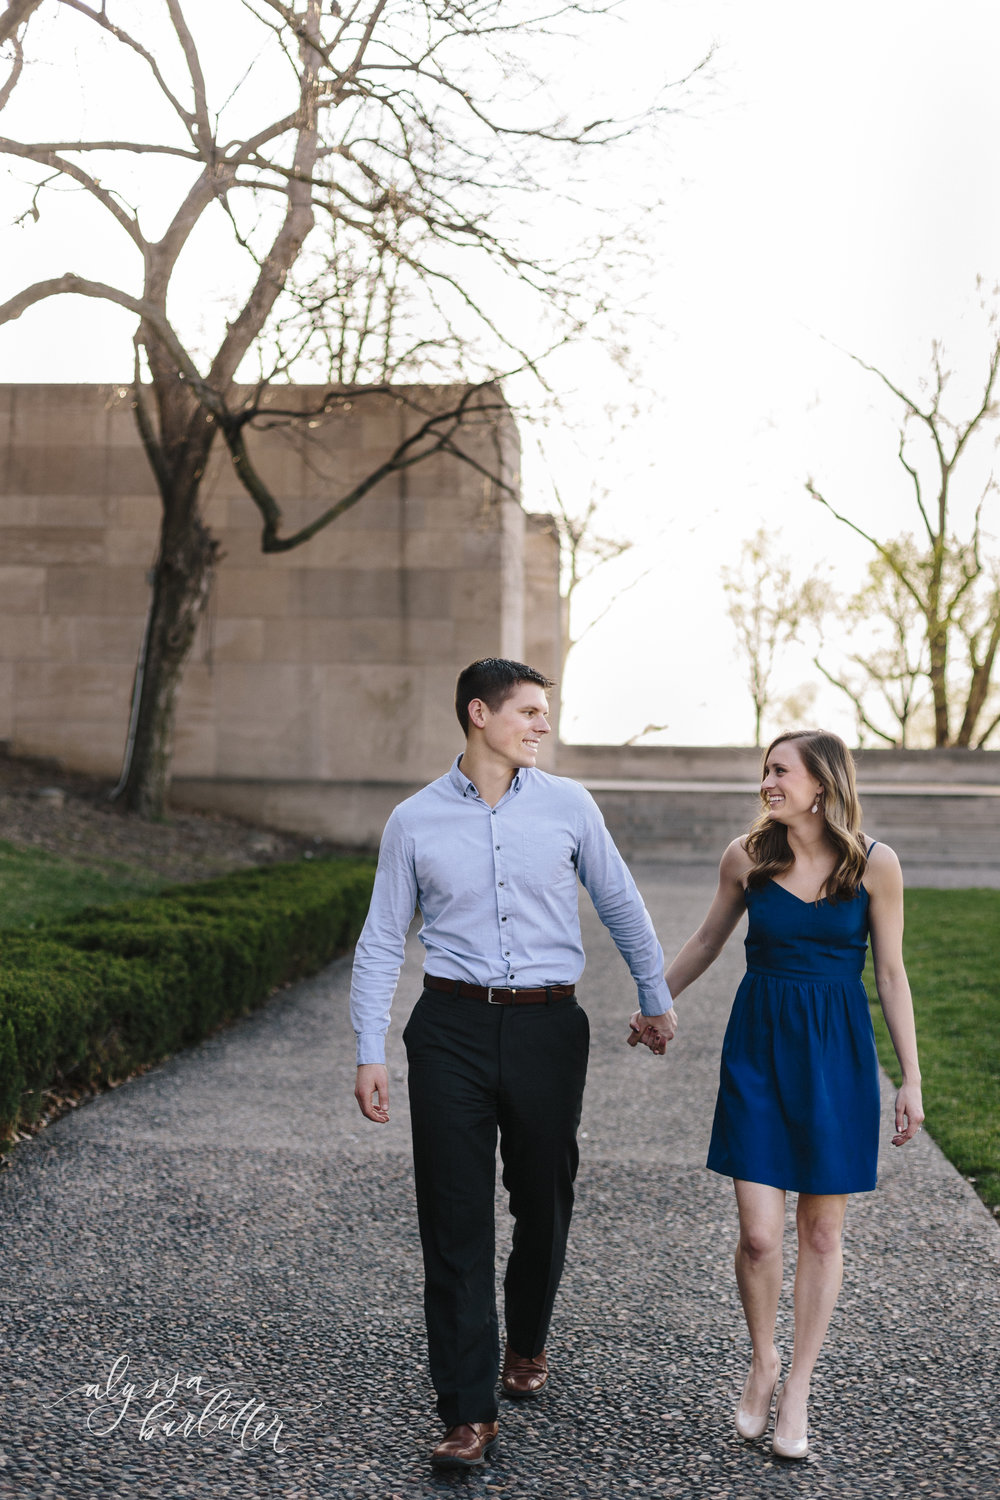 alyssa barletter photography kansas city liberty memorial loose park engagement session katie and kendall-1-5.jpg